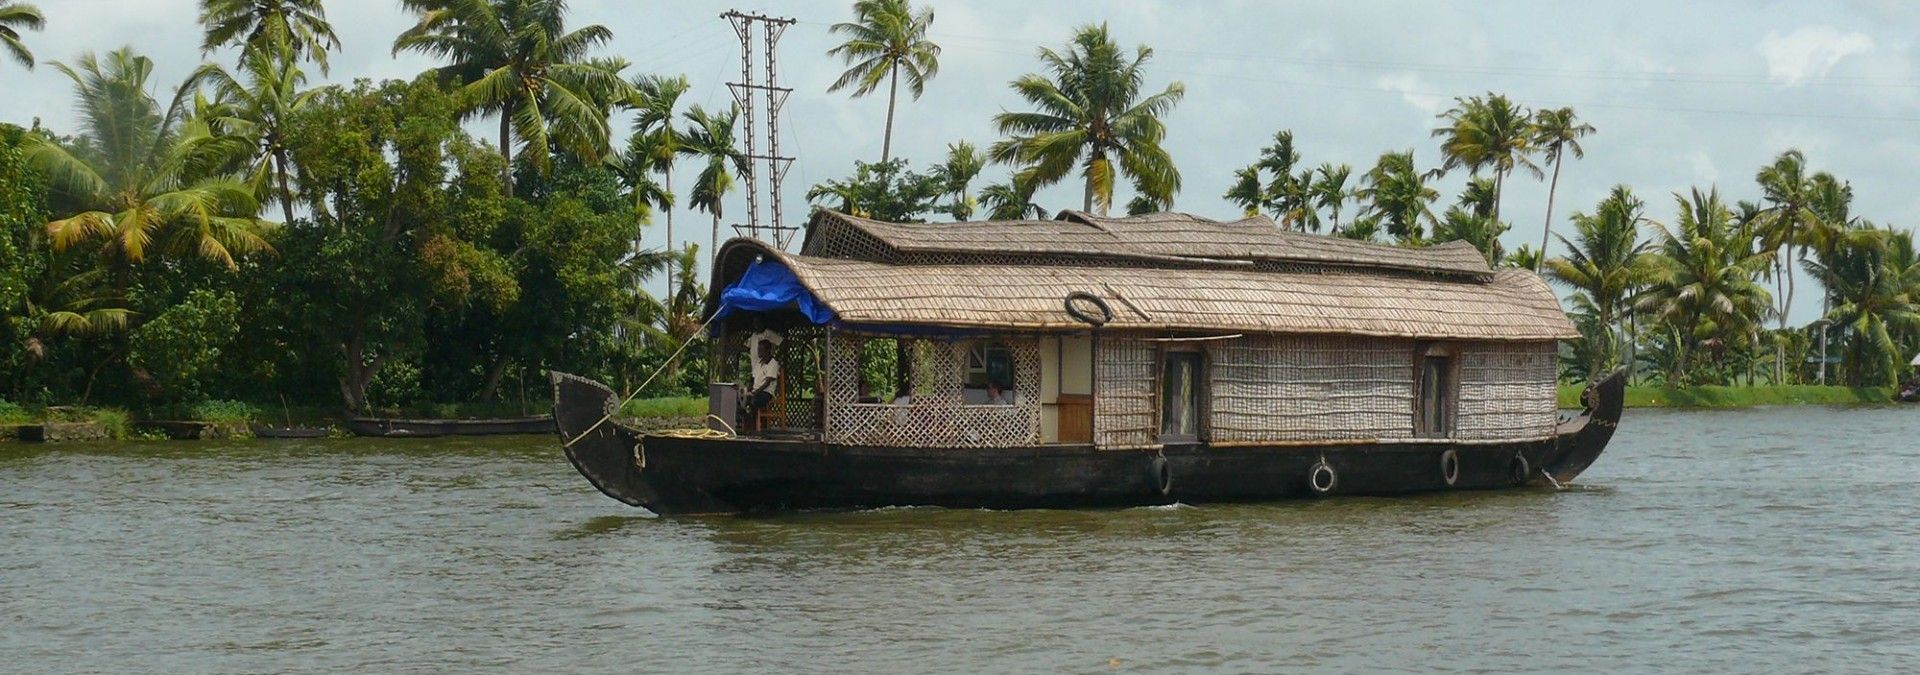 Houseboat on the backwaters of Alleppey